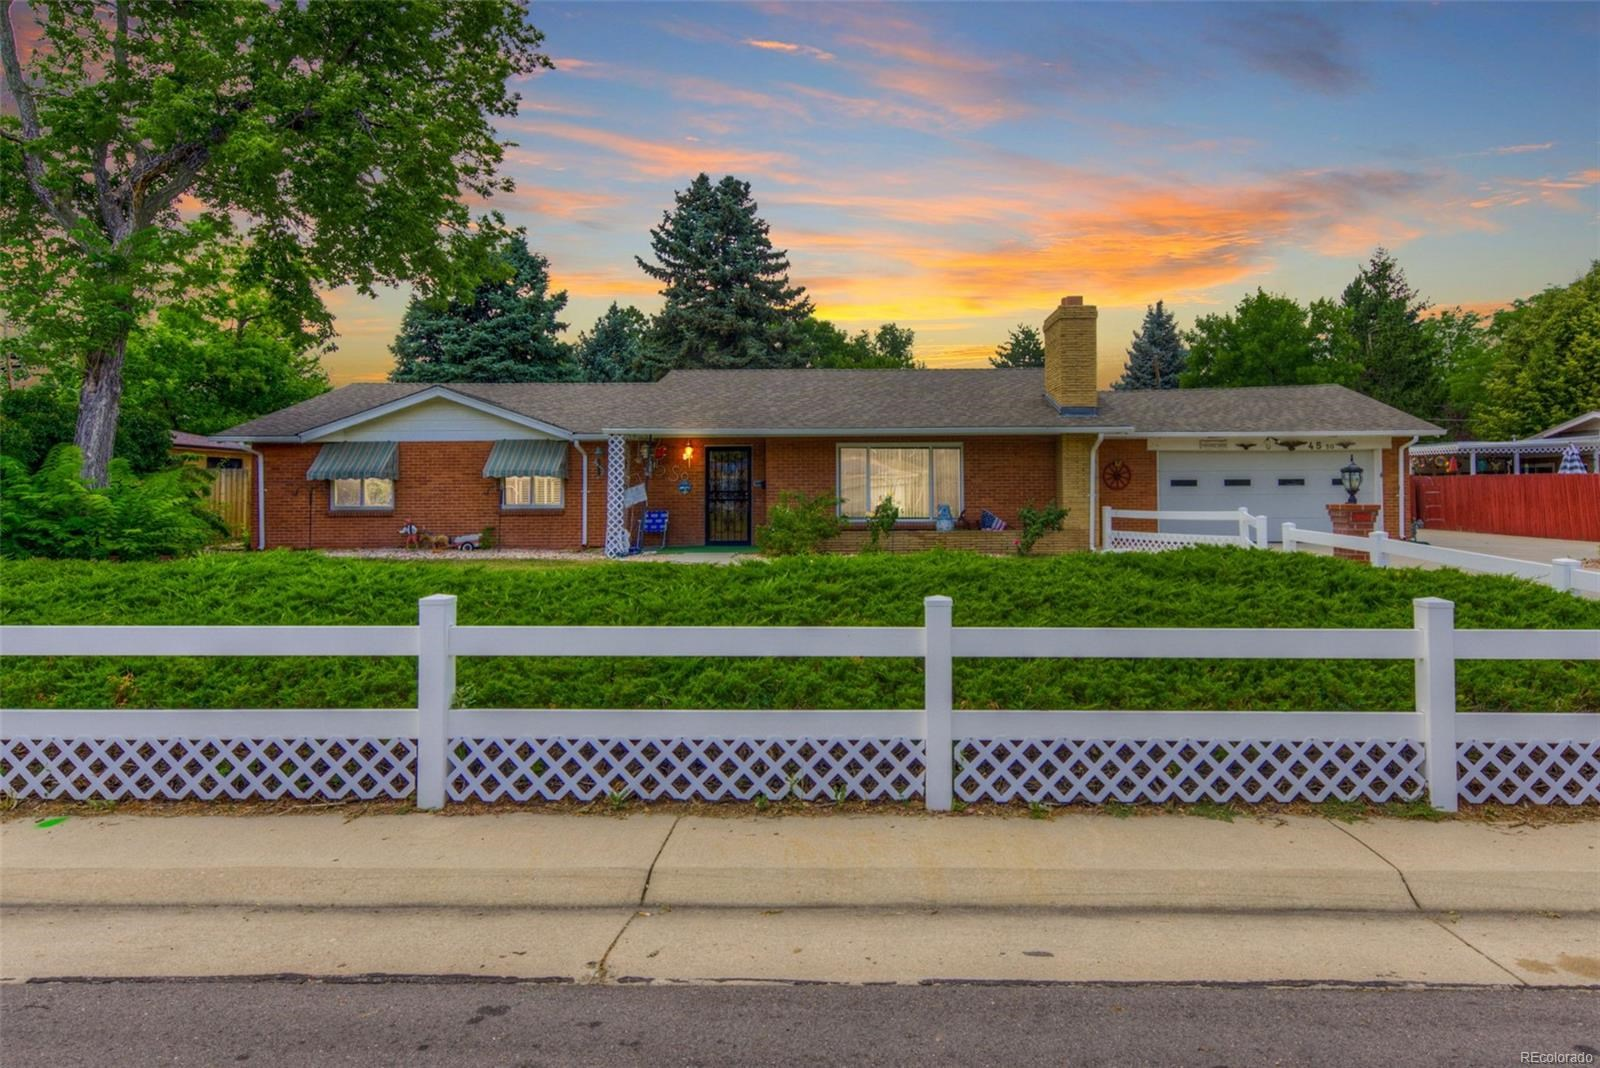 MLS# 5735873 - 1 - 45 S Brentwood Street, Lakewood, CO 80226